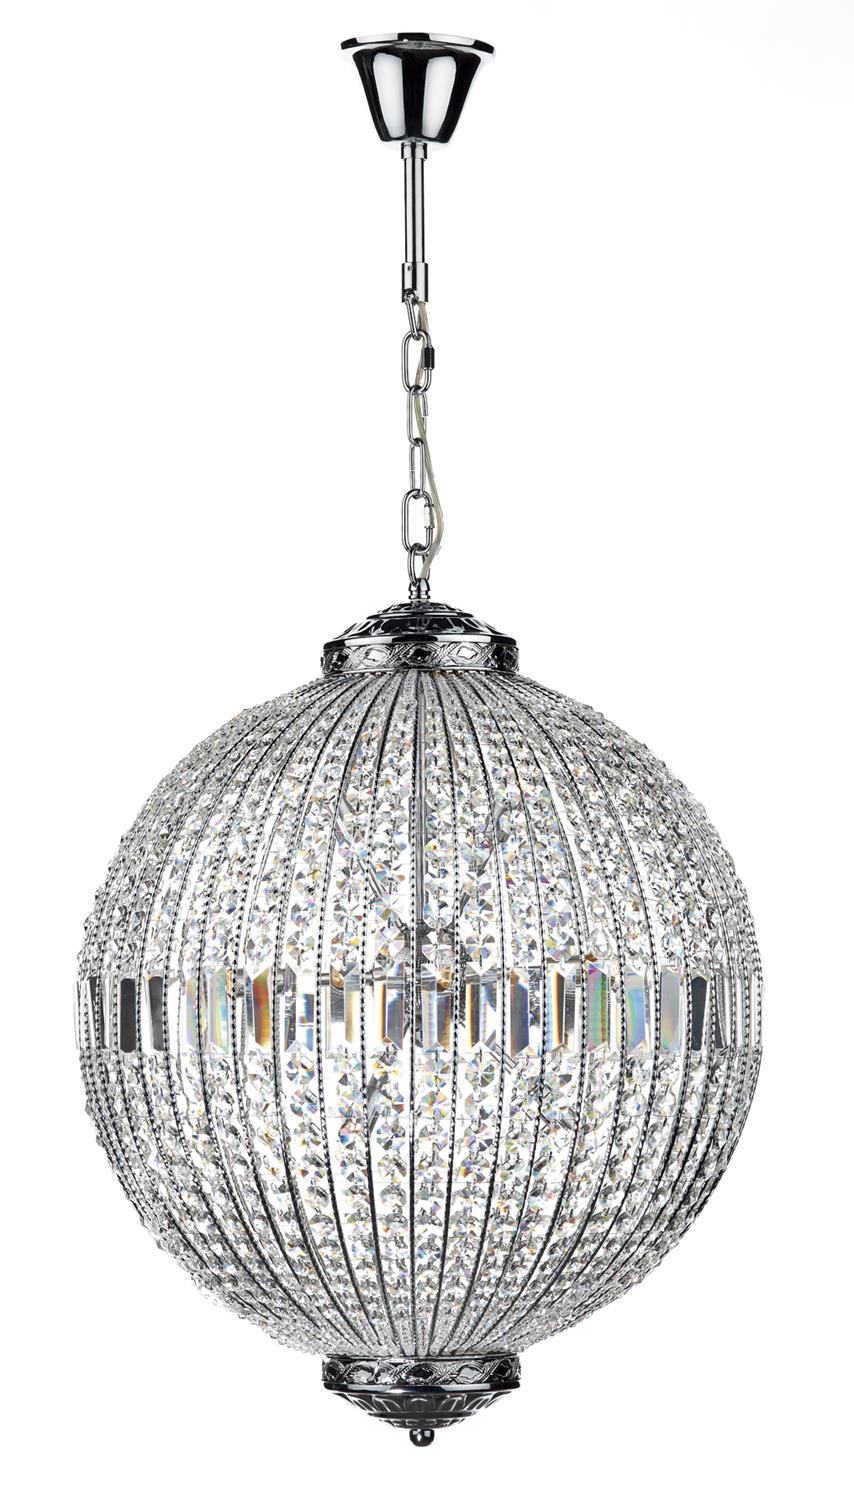 Dar EQU1250 Equator 12 Light Pendant Ball in Chrome